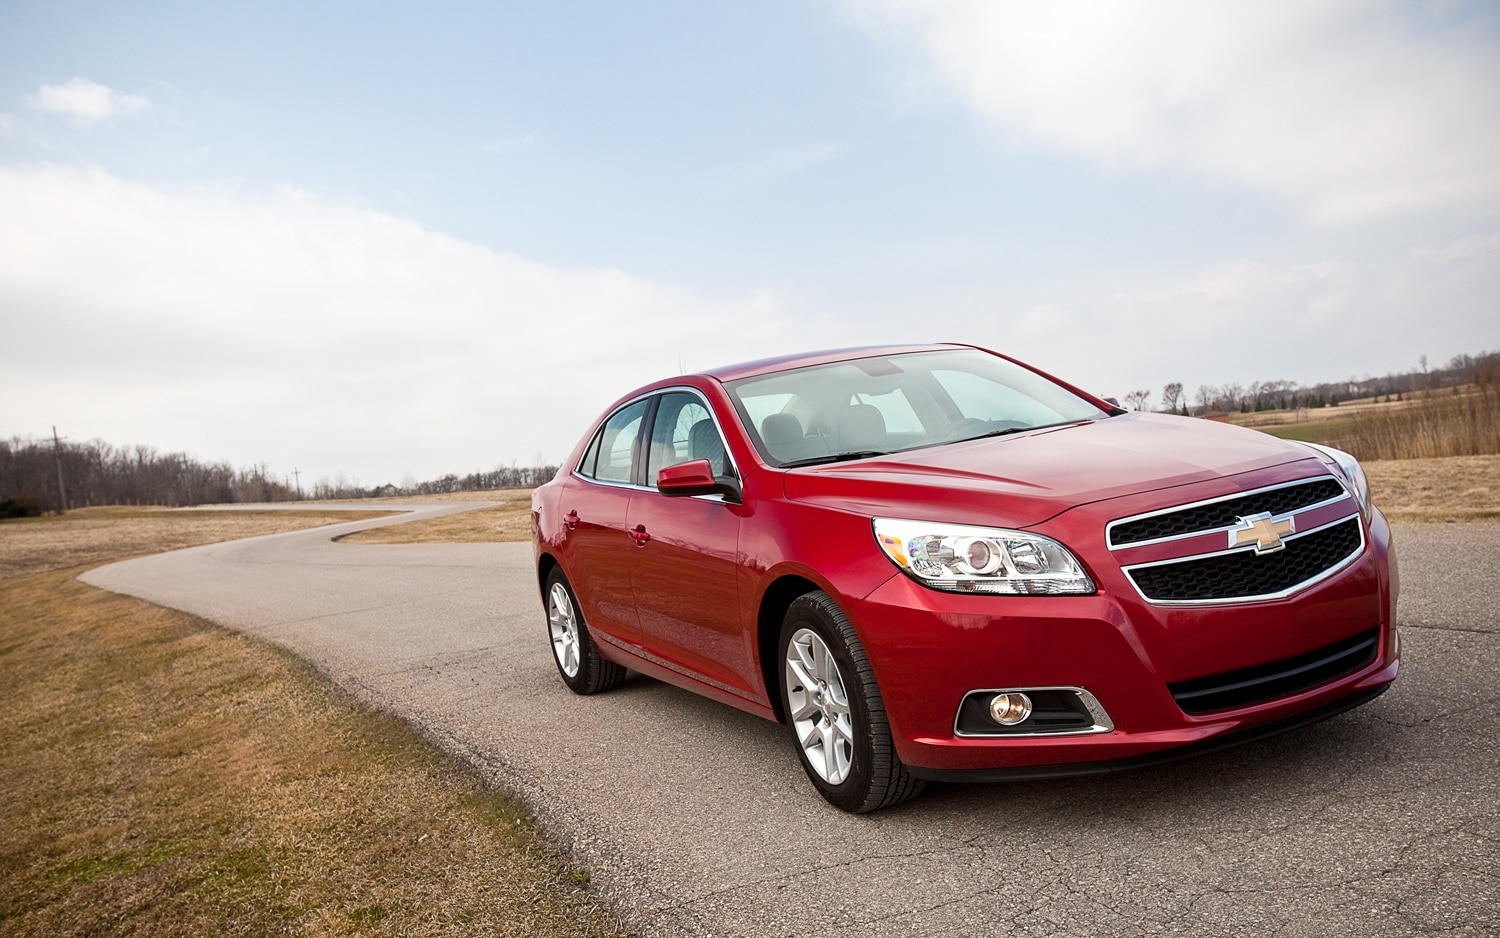 Malibu 2013 chevrolet malibu vin : 2013 Chevrolet Malibu Eco - Editors' Notebook - Automobile Magazine